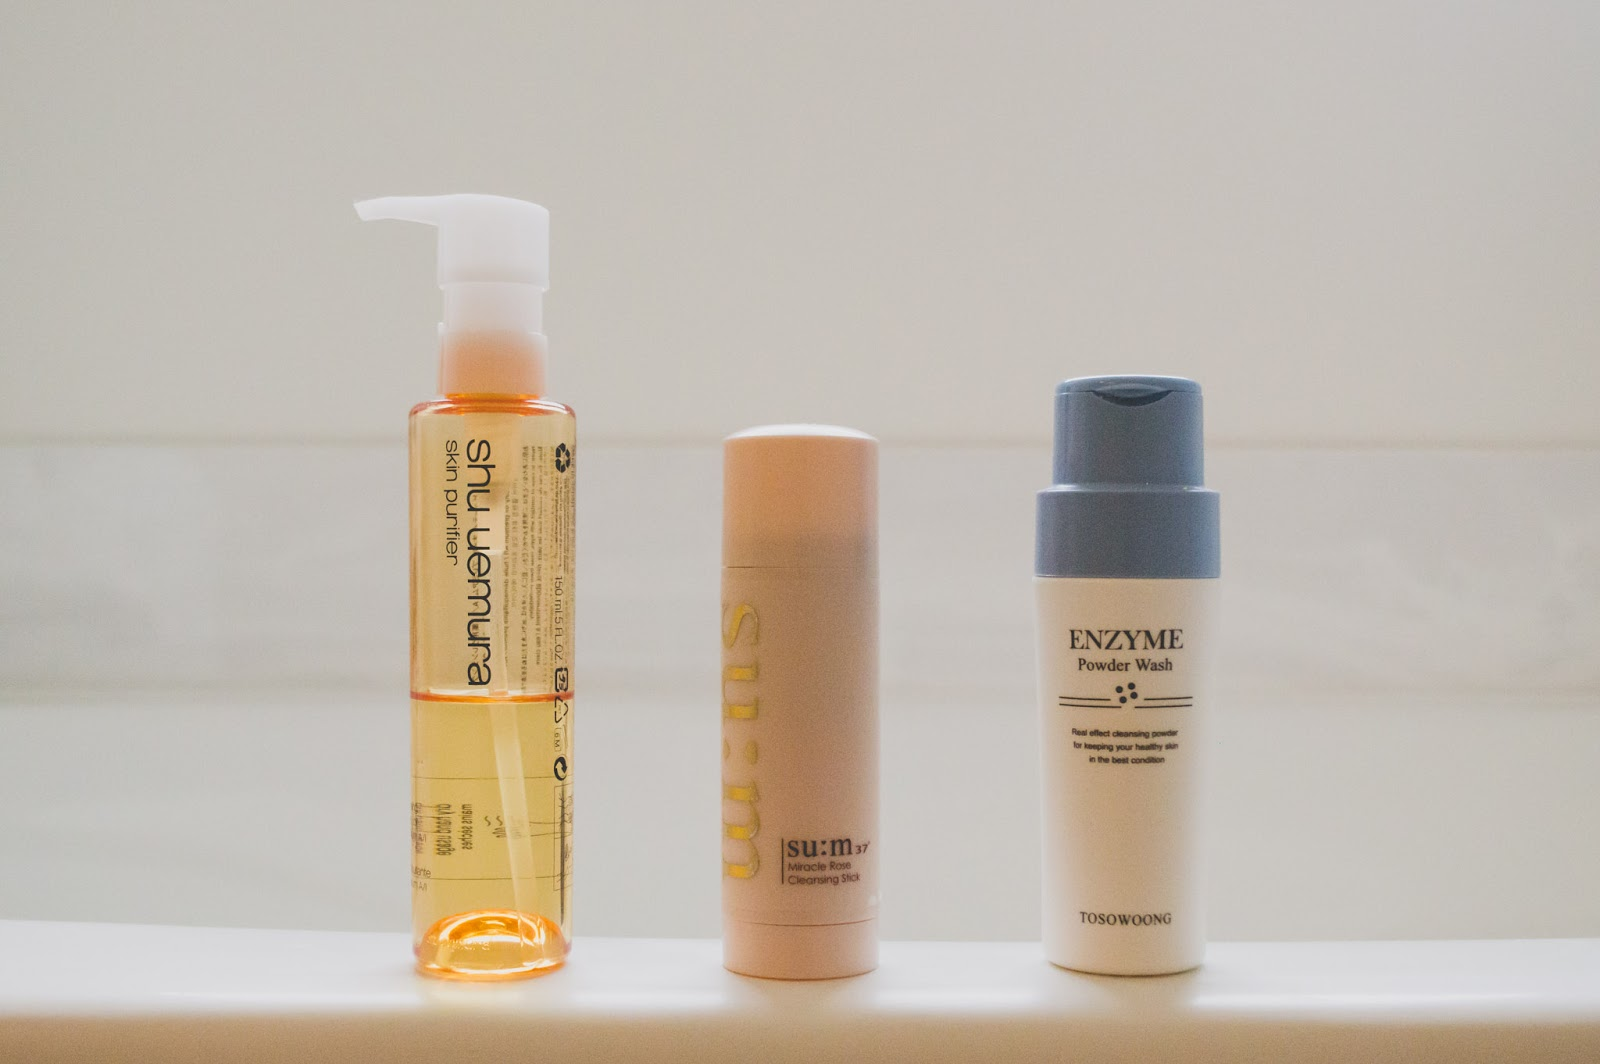 Facial Cleansers, Oil Cleanser, Shu Uemura Cleansing Beauty Oil Premium A/I, SU:M37 Miracle Rose Cleansing Stick, MRCS, Tosowoong Enzyme Powder Wash, pH 5.5